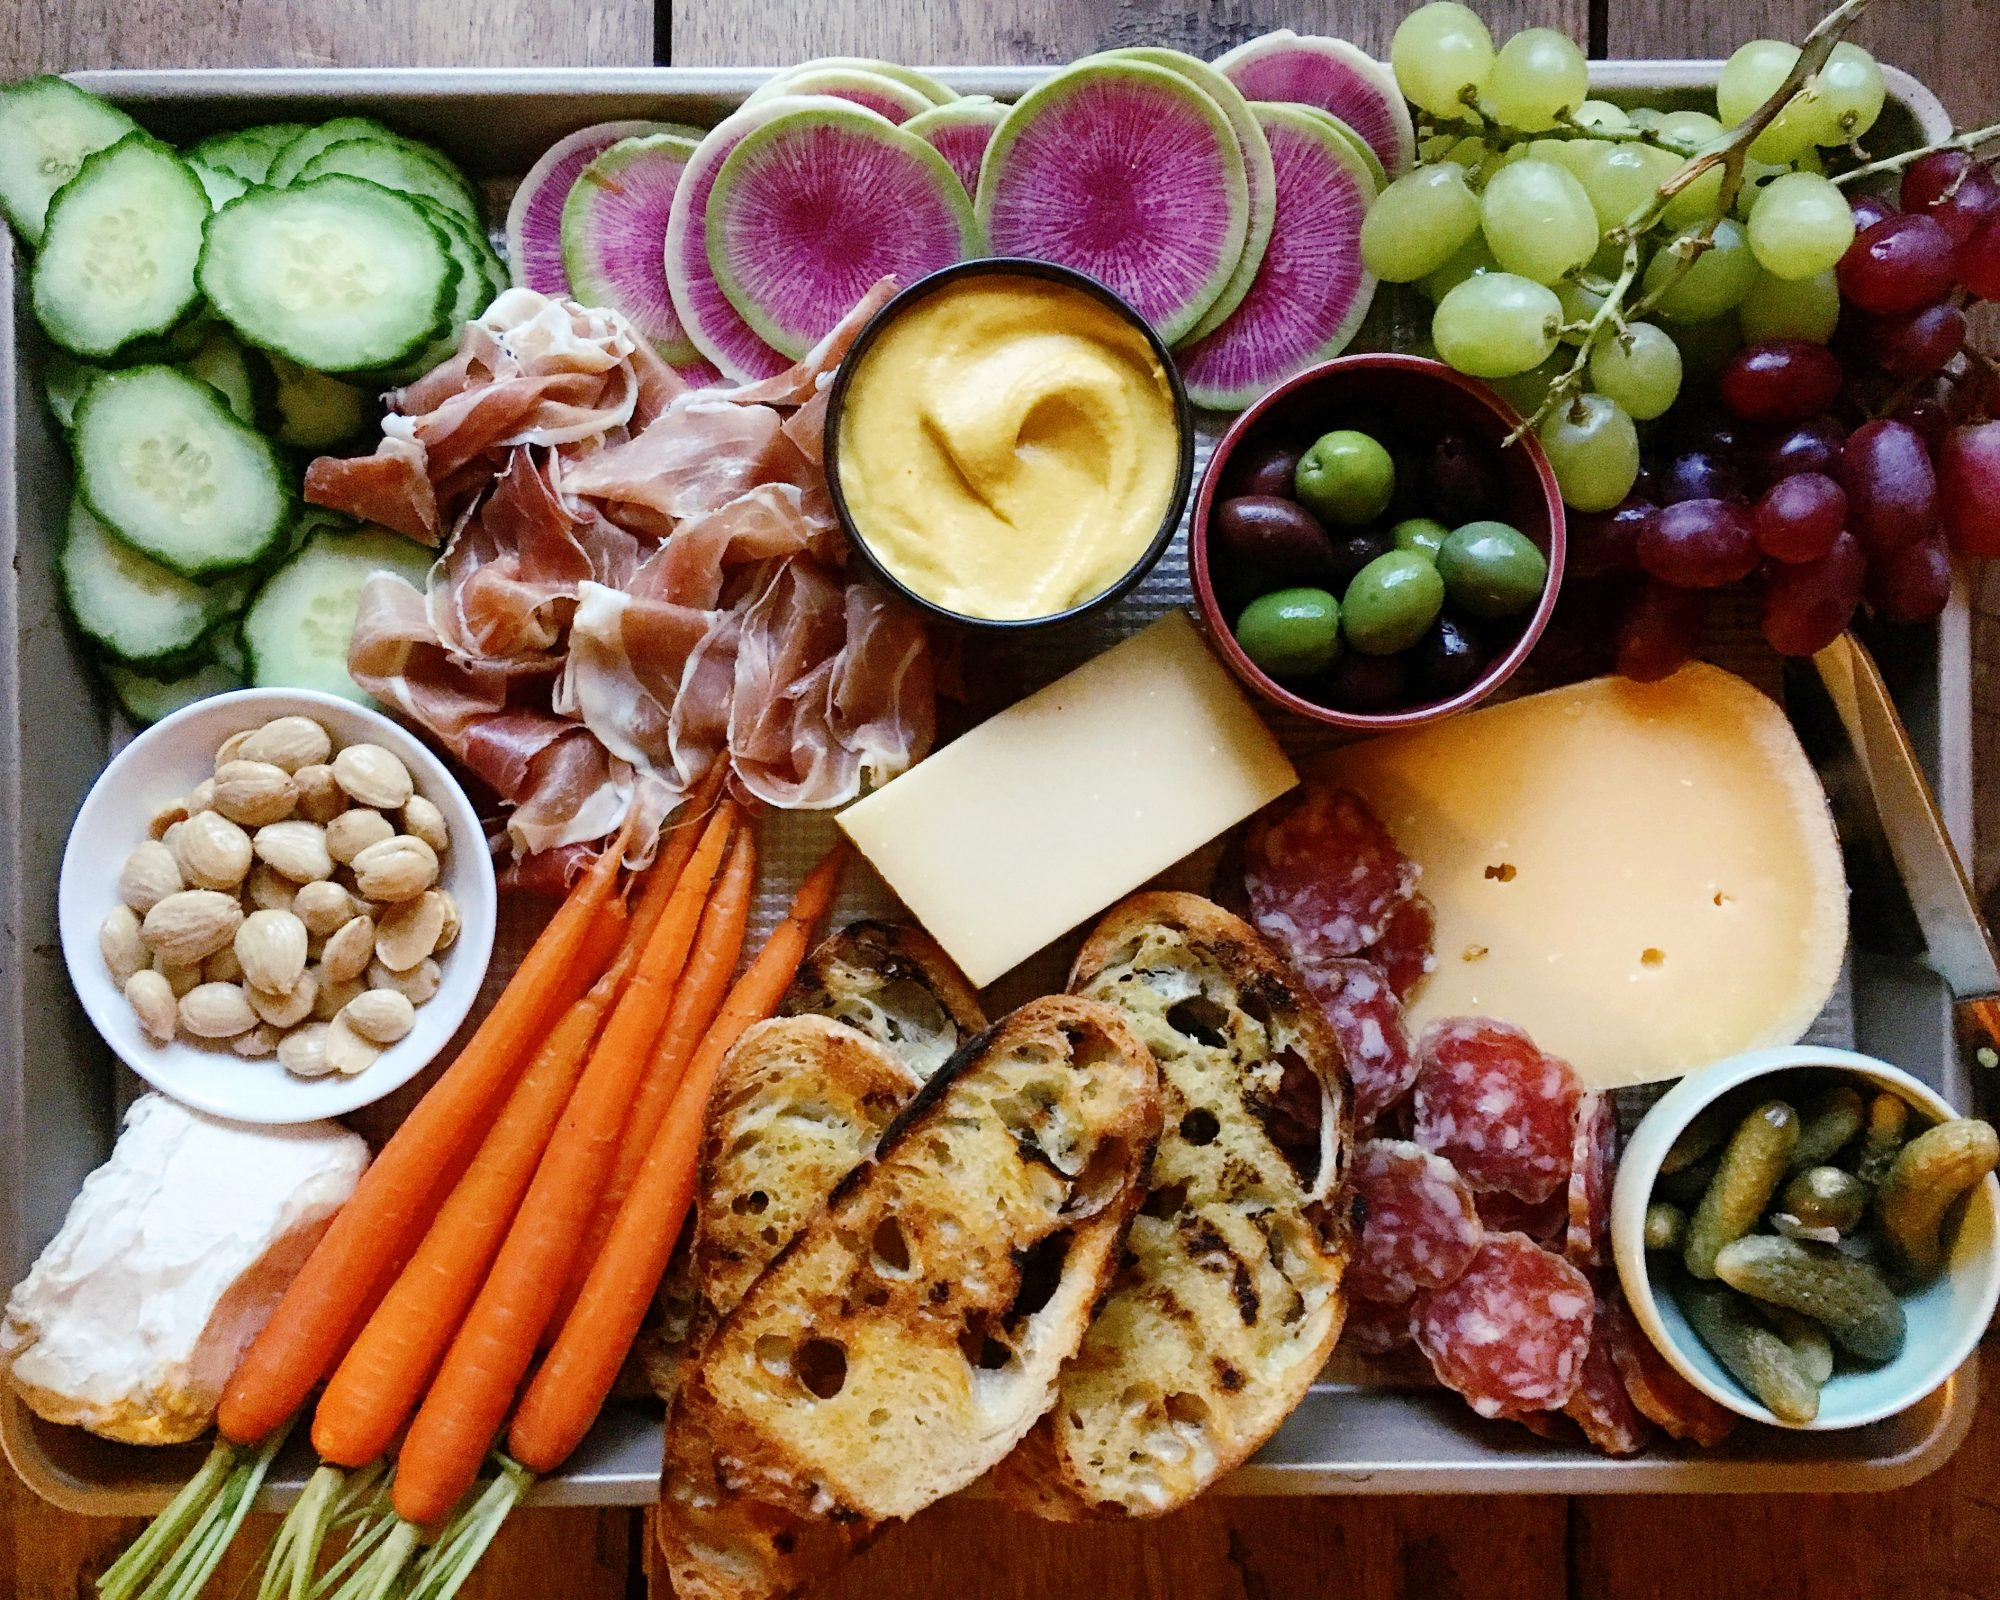 What to cook for a party with friends